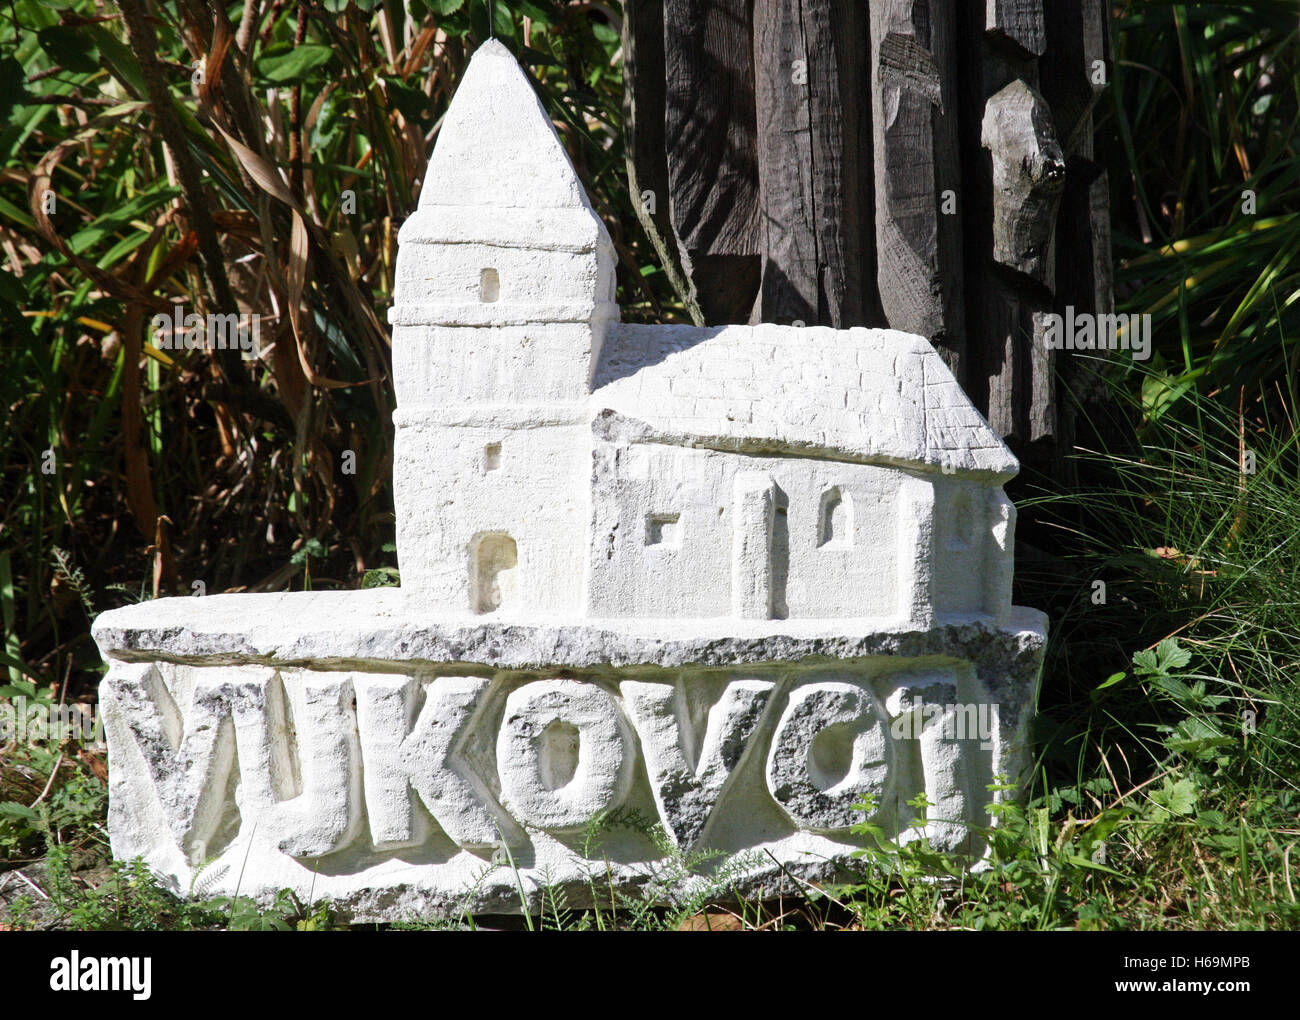 Naive sculptures,Vukovoj,Croatia,Europe,4 - Stock Image